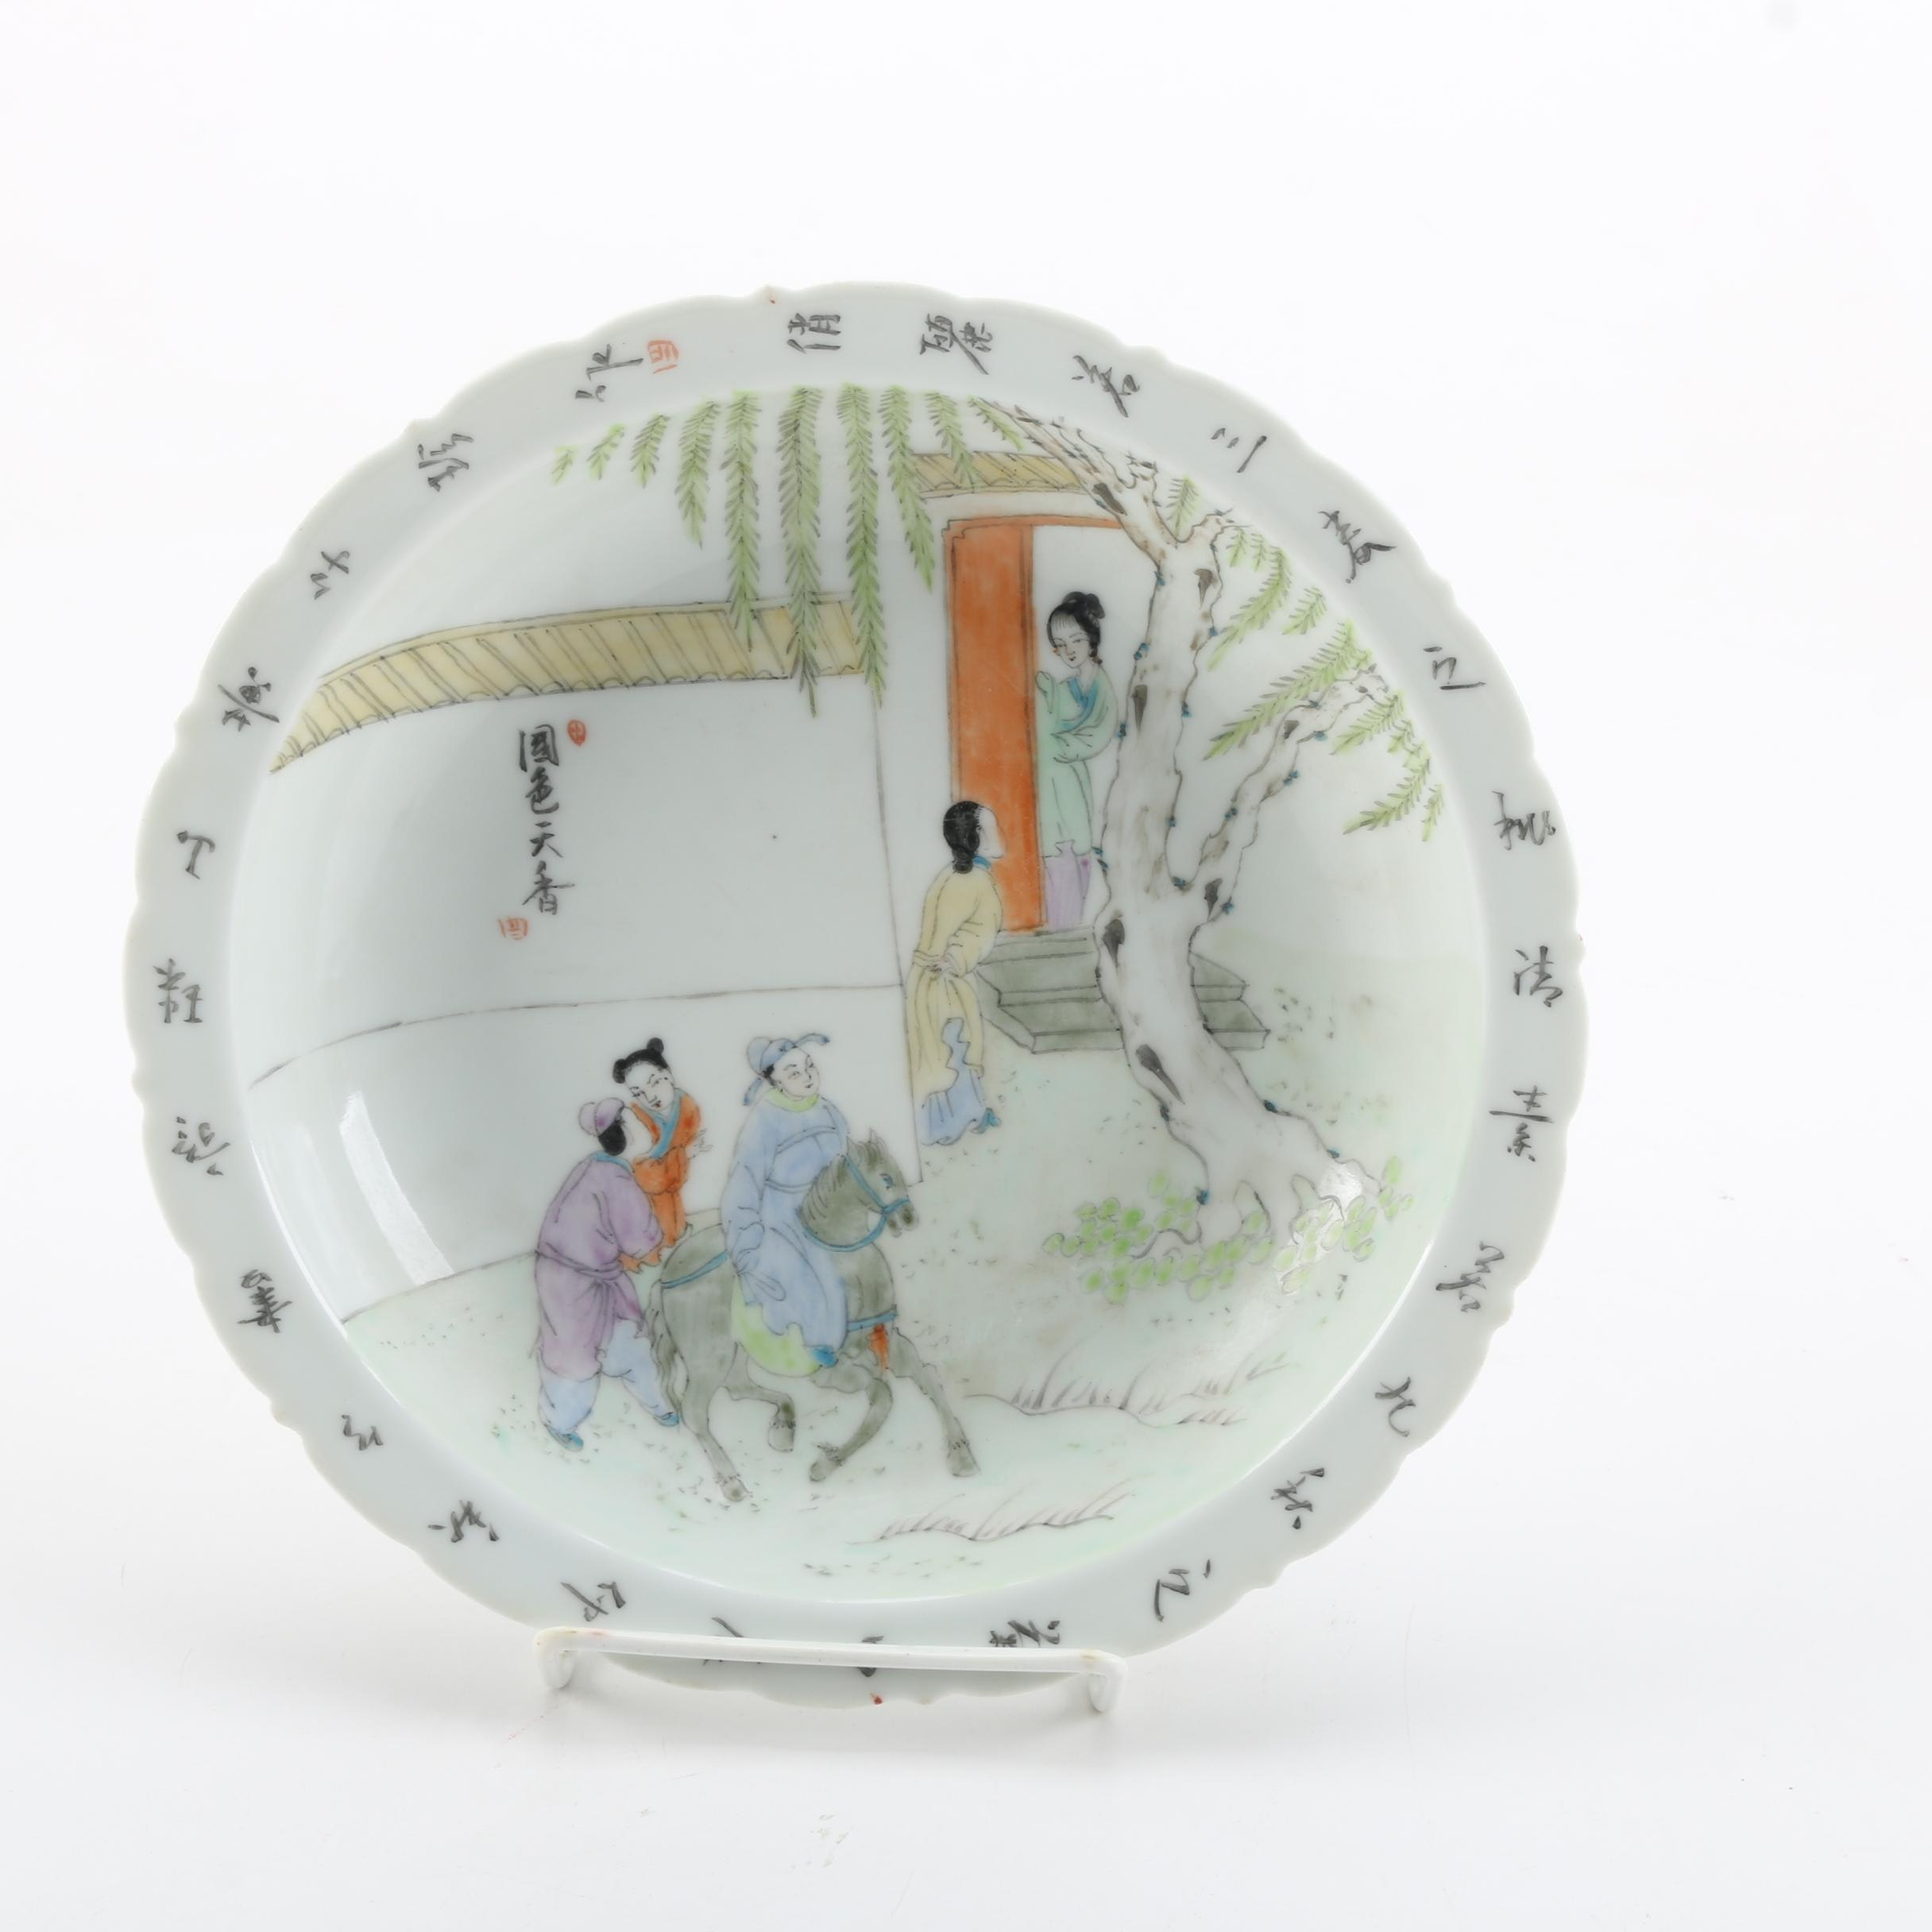 Hand-painted Chinese Porcelain Plate